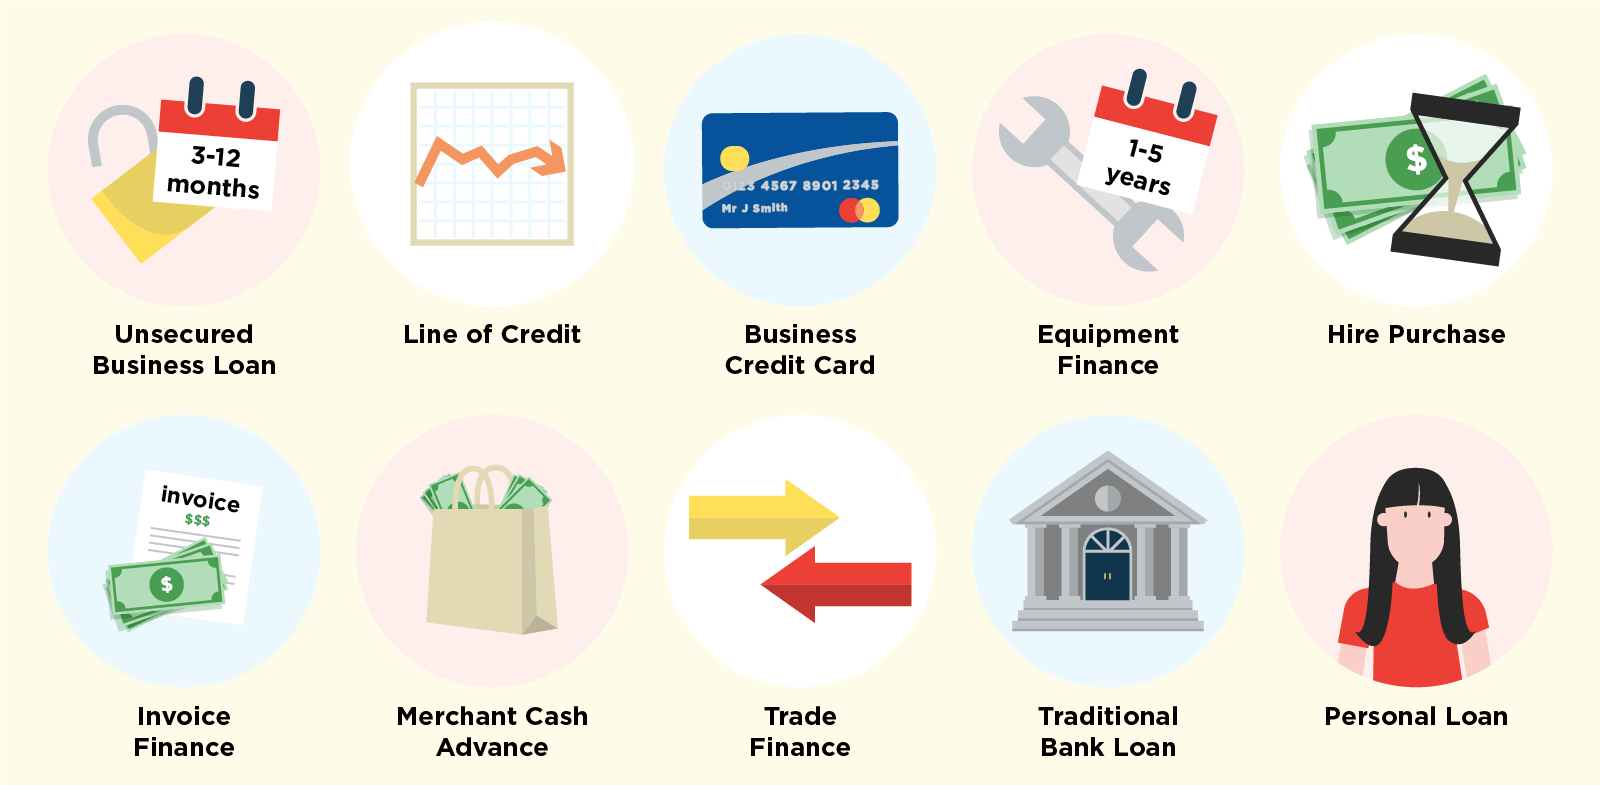 10 icons showing the most common reasons for business finance